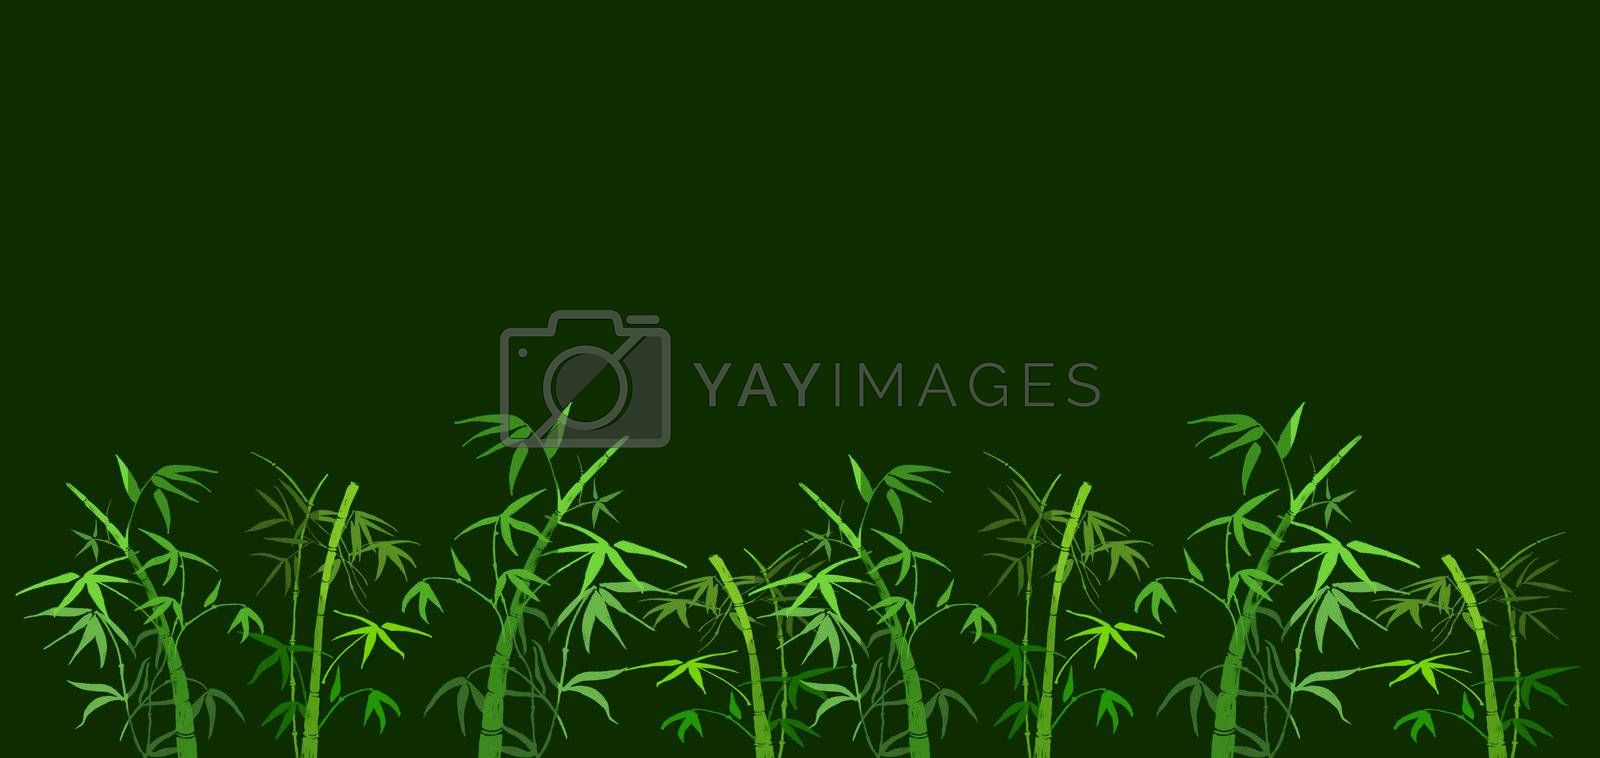 On green background the branches of bamboo